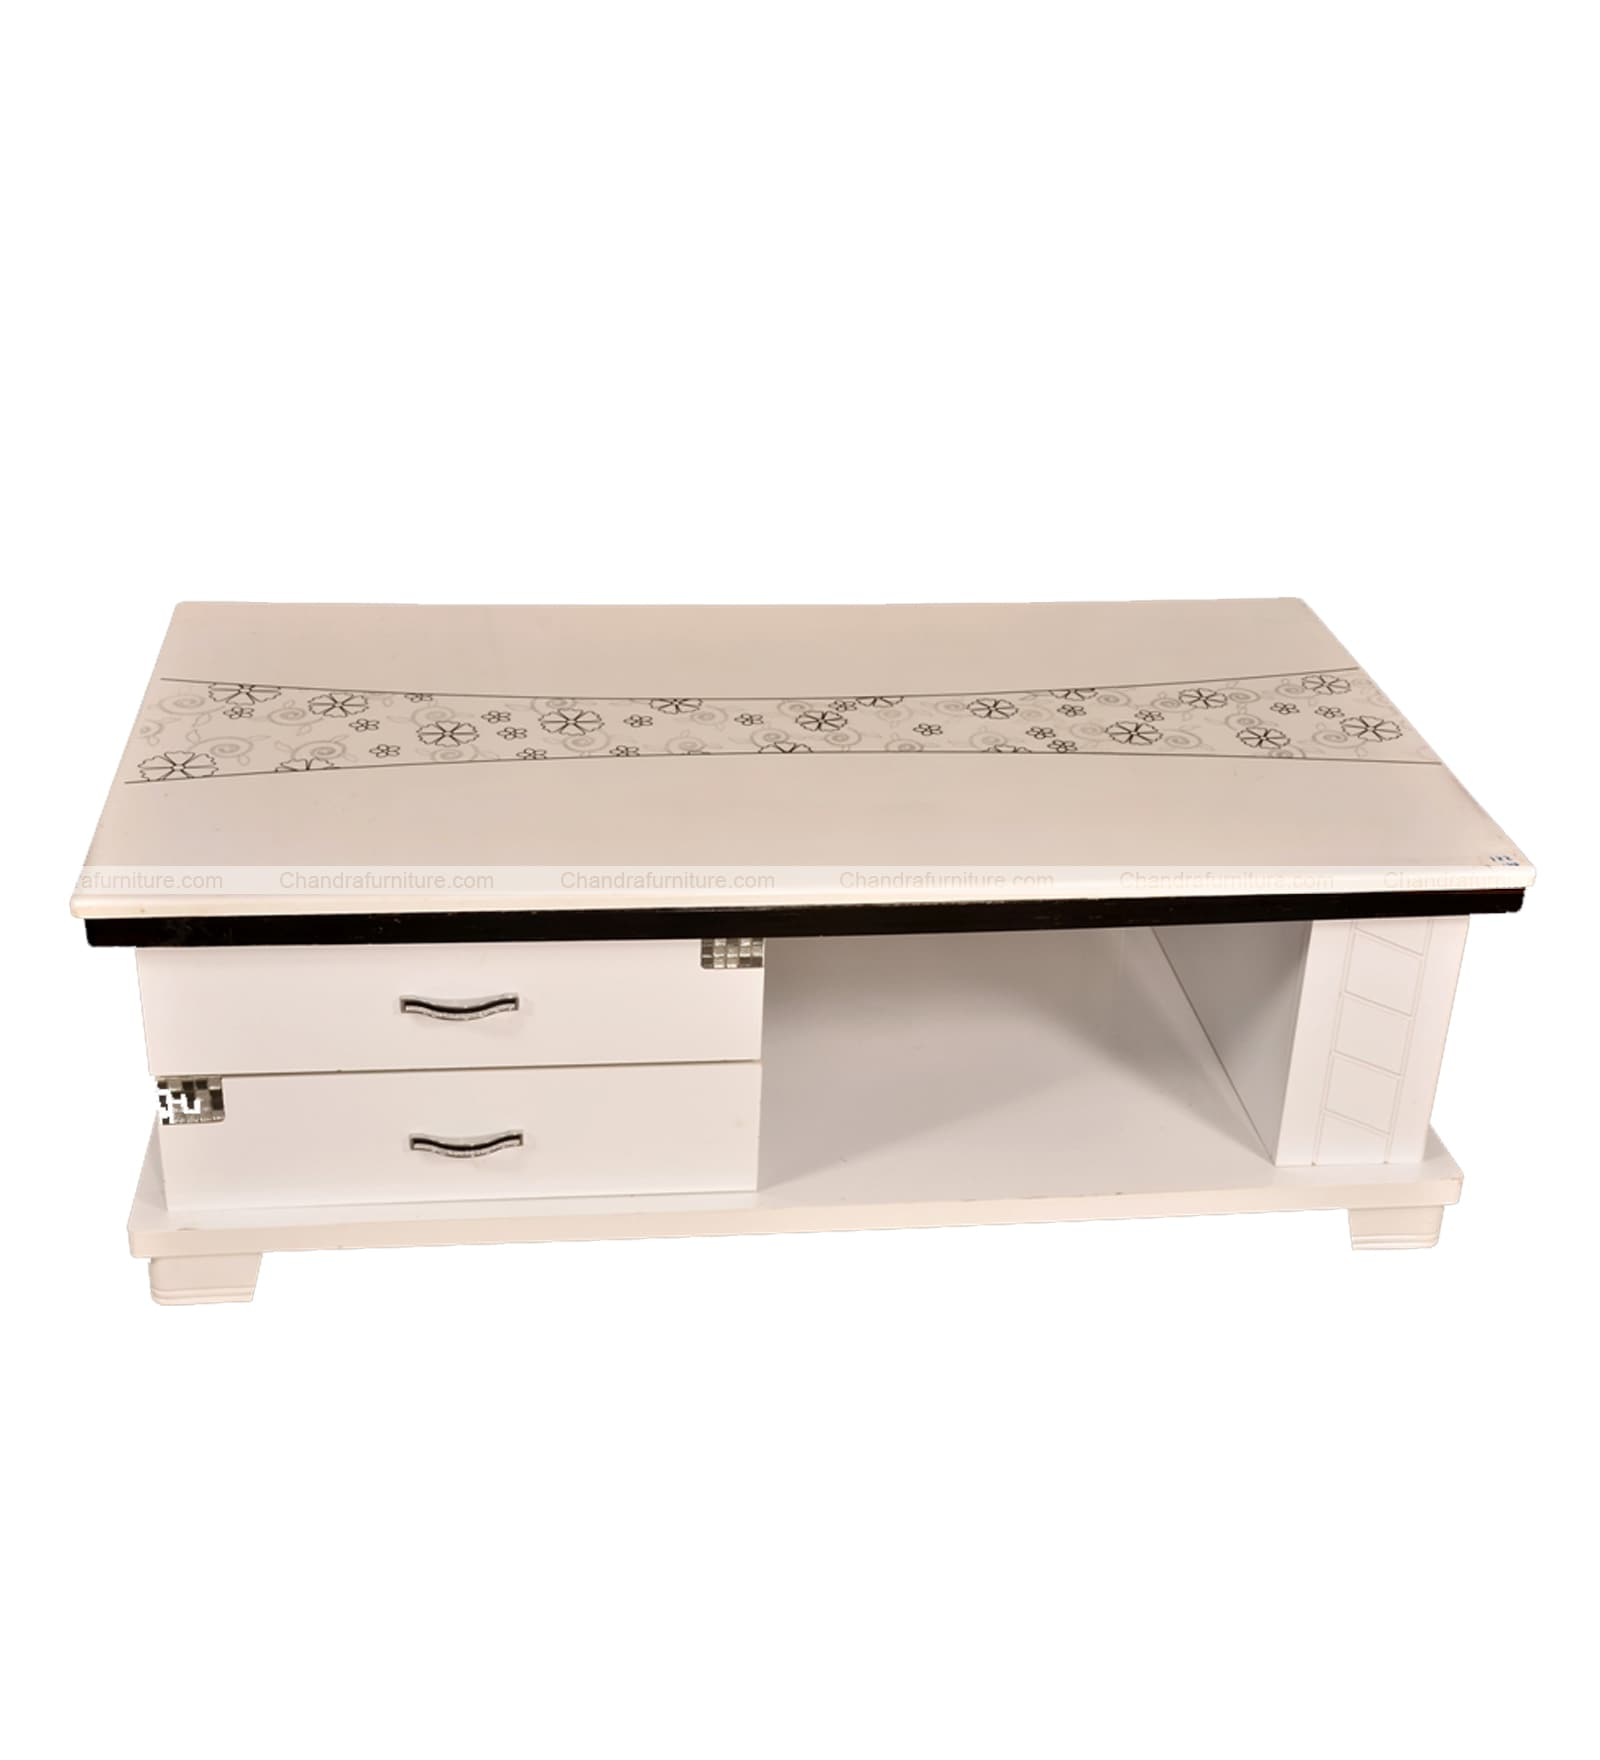 CHANDRA FURNITURE CENTER TABLE  221 (Marble)